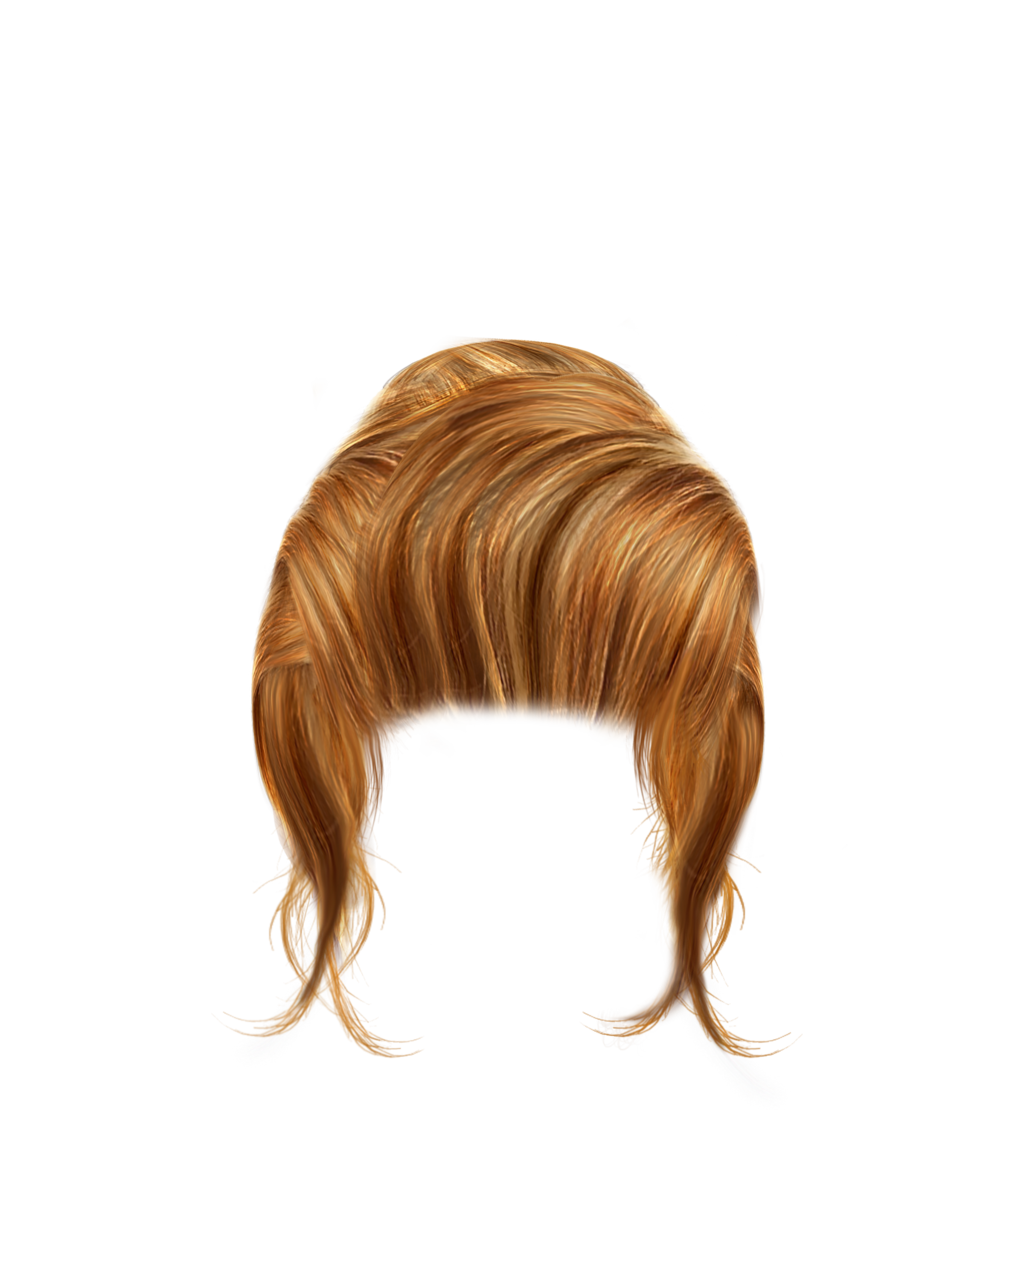 Anime girl hair png. Images women and men